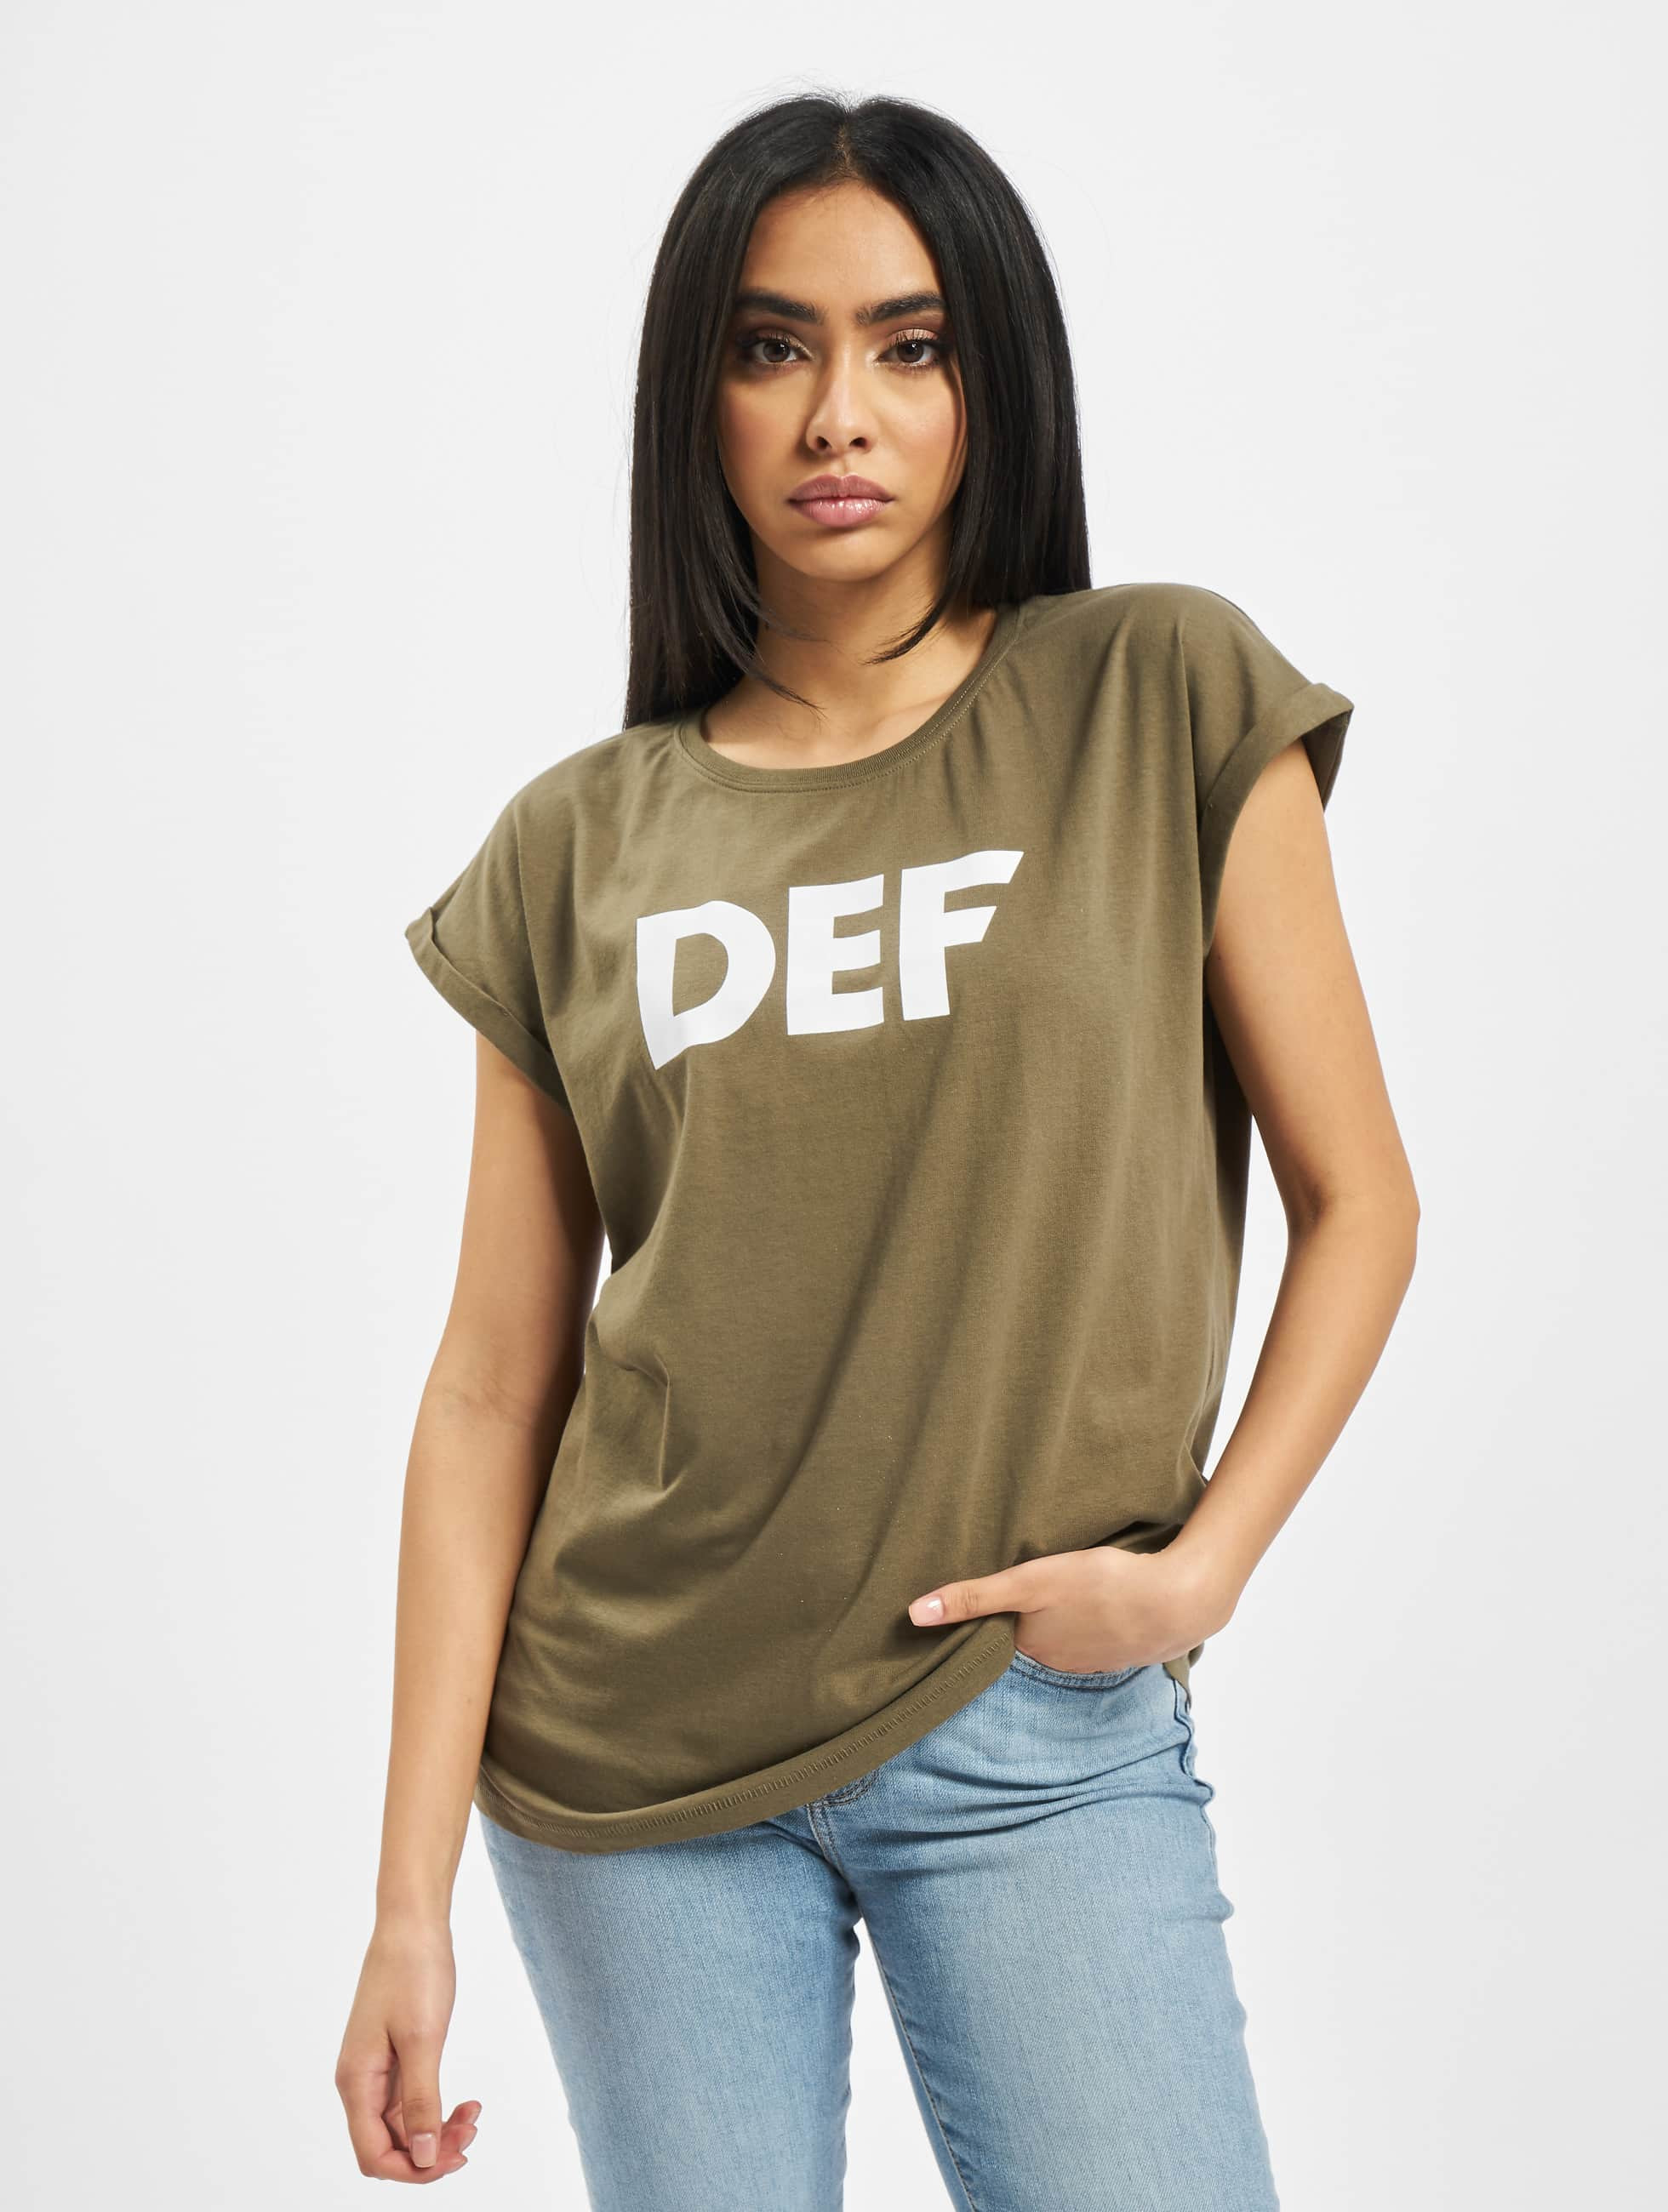 DEF / T-Shirt Sizza in olive XS